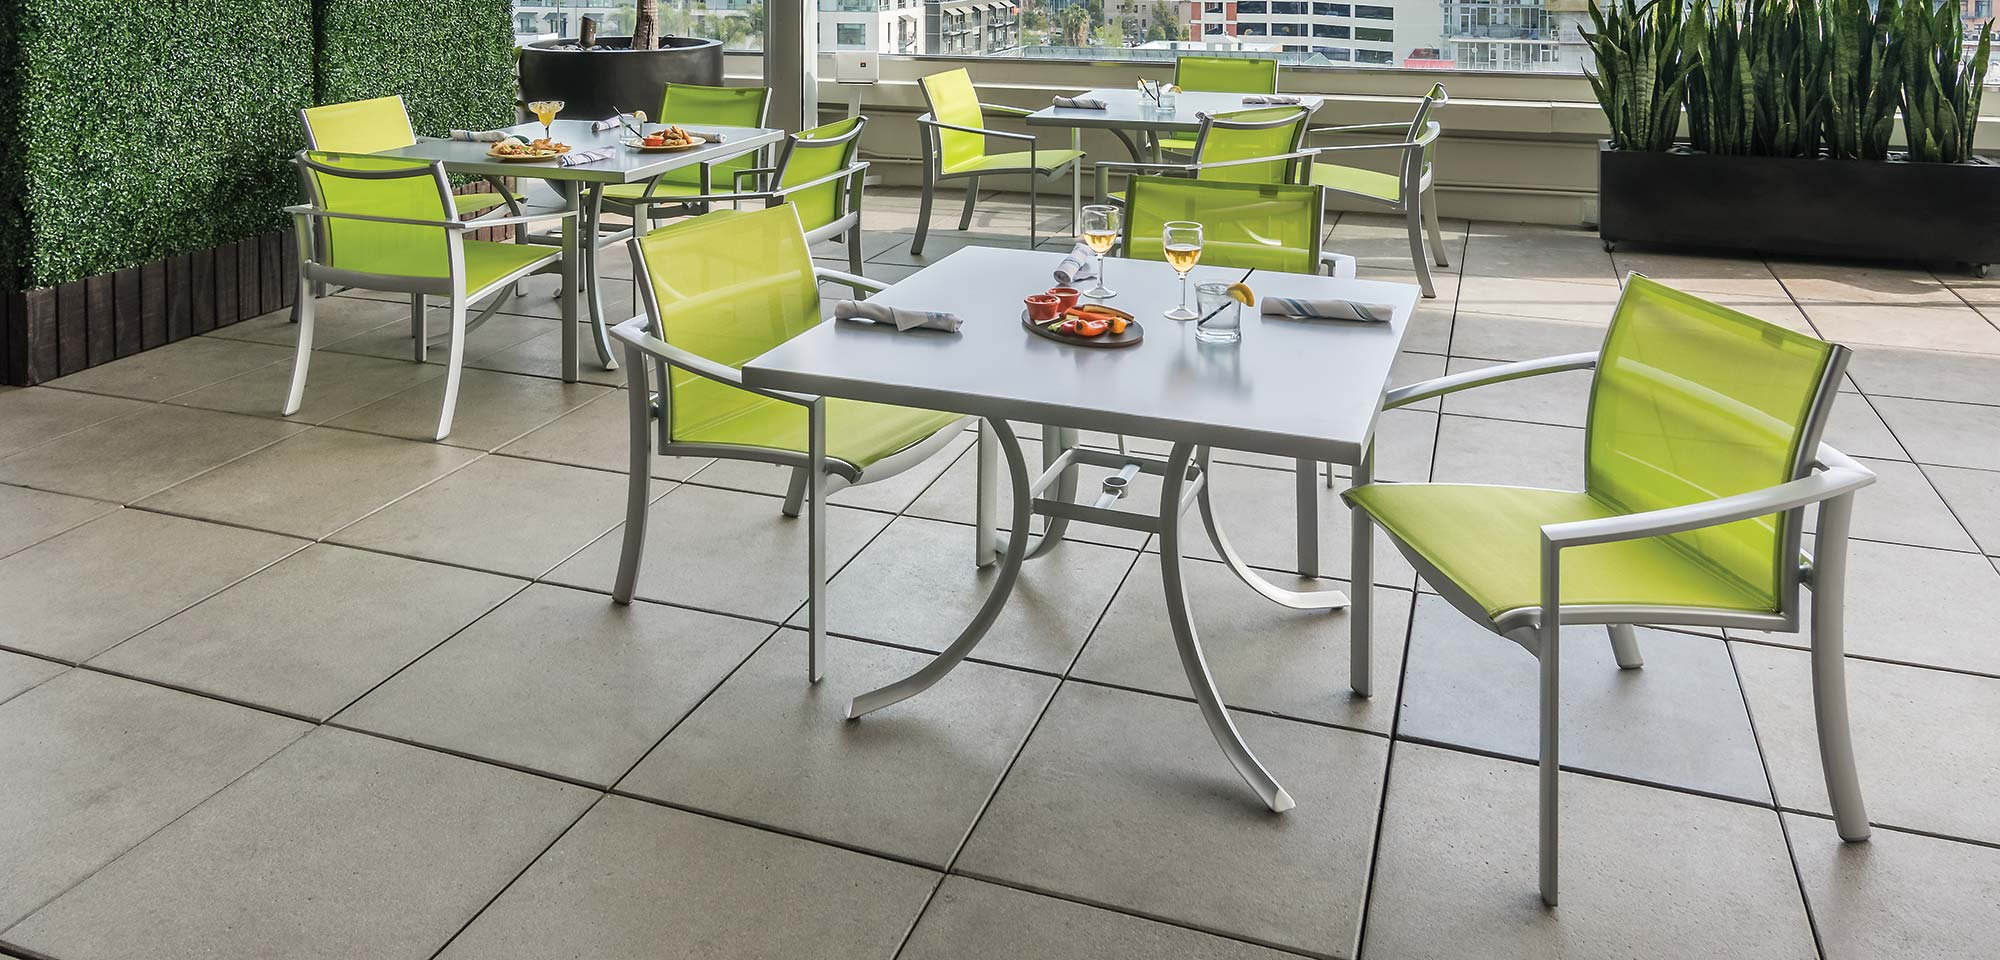 commercial outdoor furniture | patio furniture | outdoor furniture